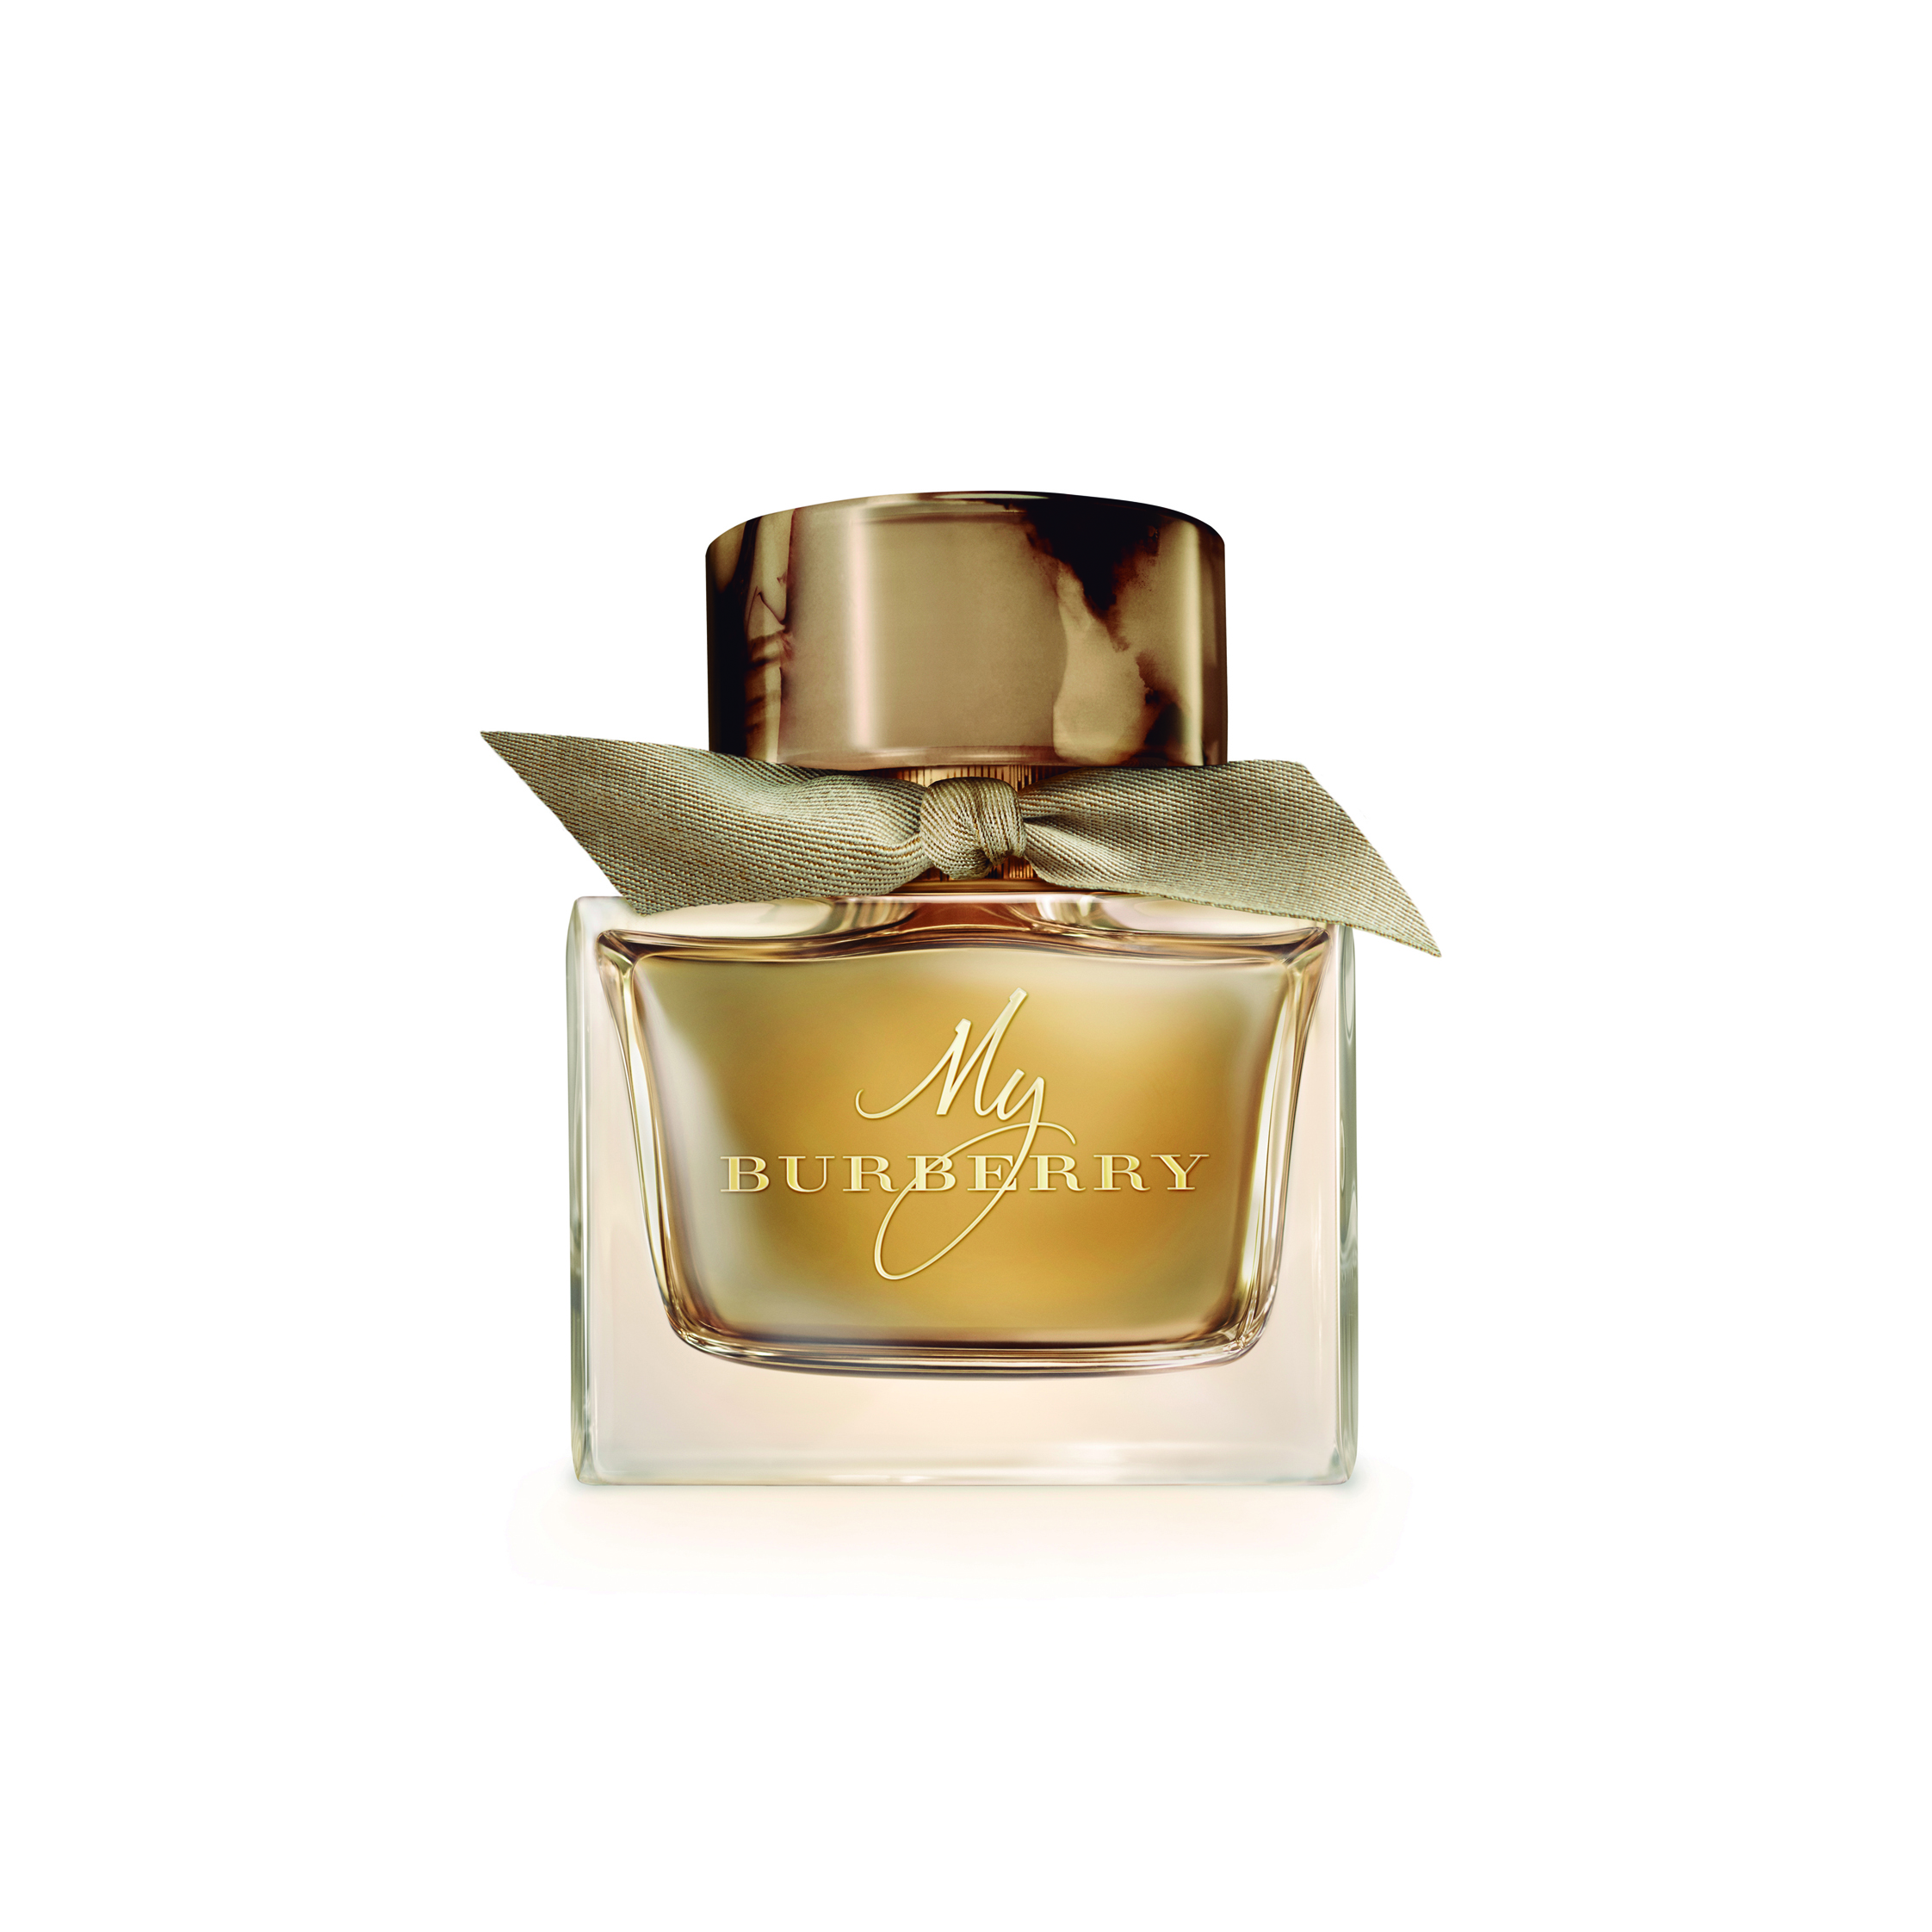 My Burberry perfume